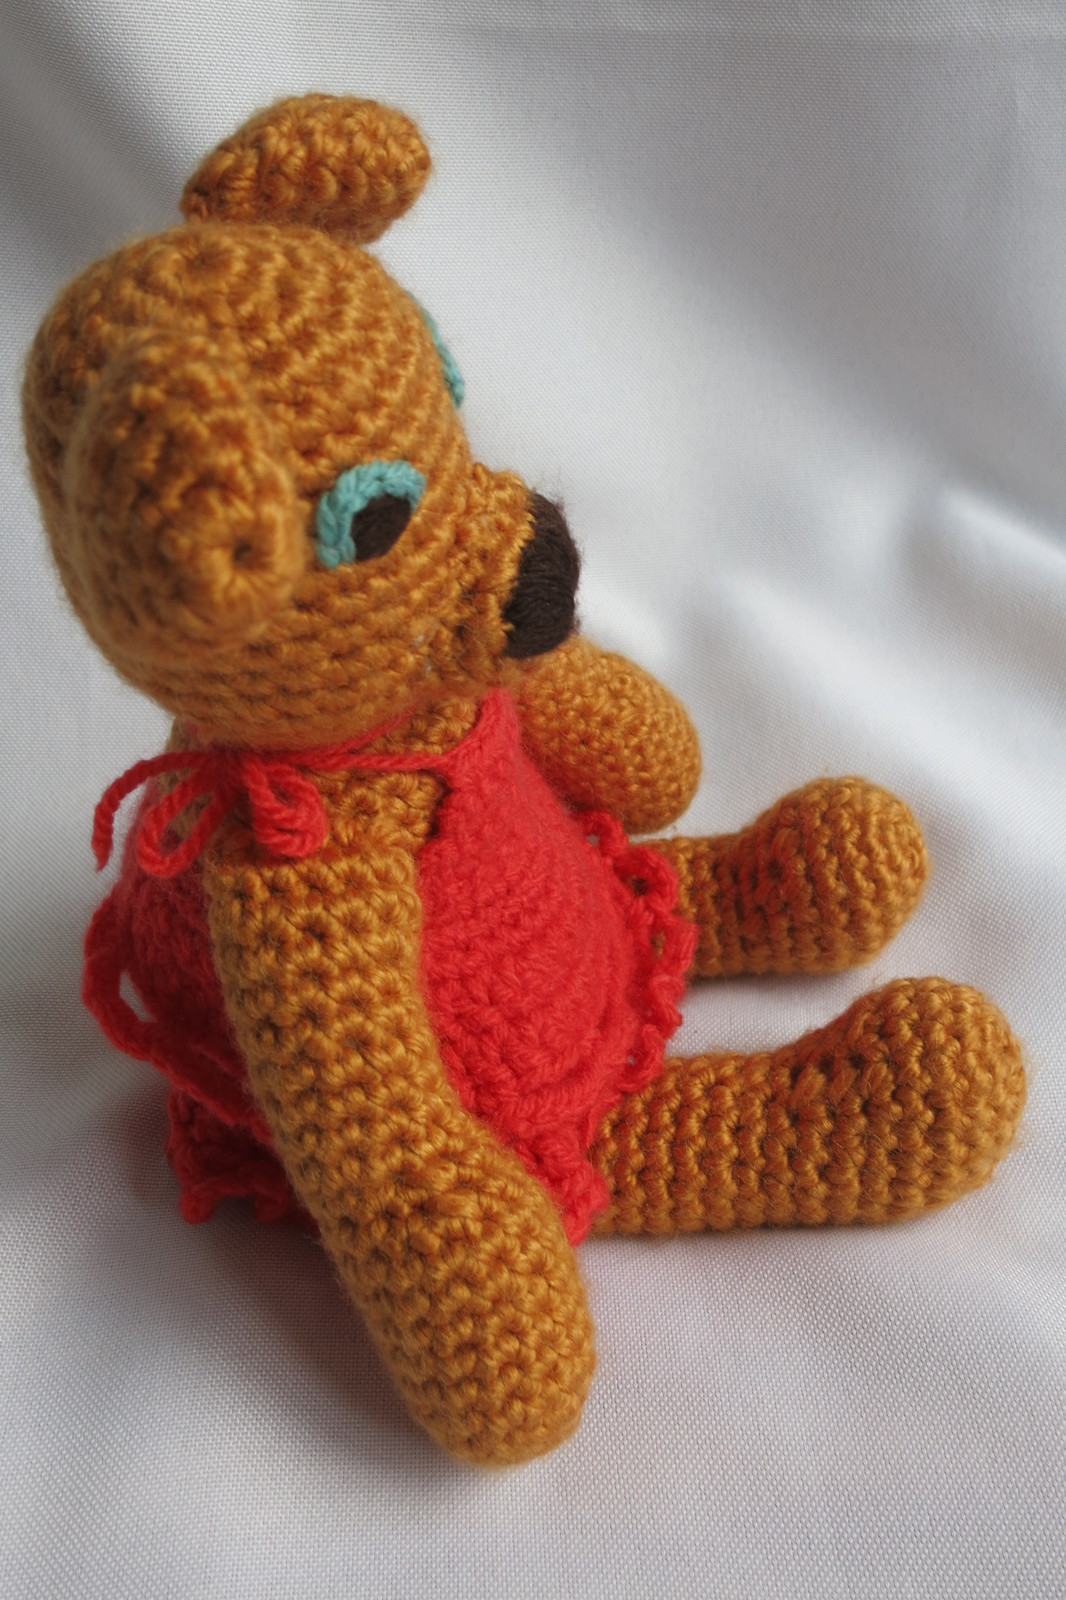 Handcrafted Honey Teddy Bear Girl Soft Toy - Crochet Animal - Amigurumi Bear